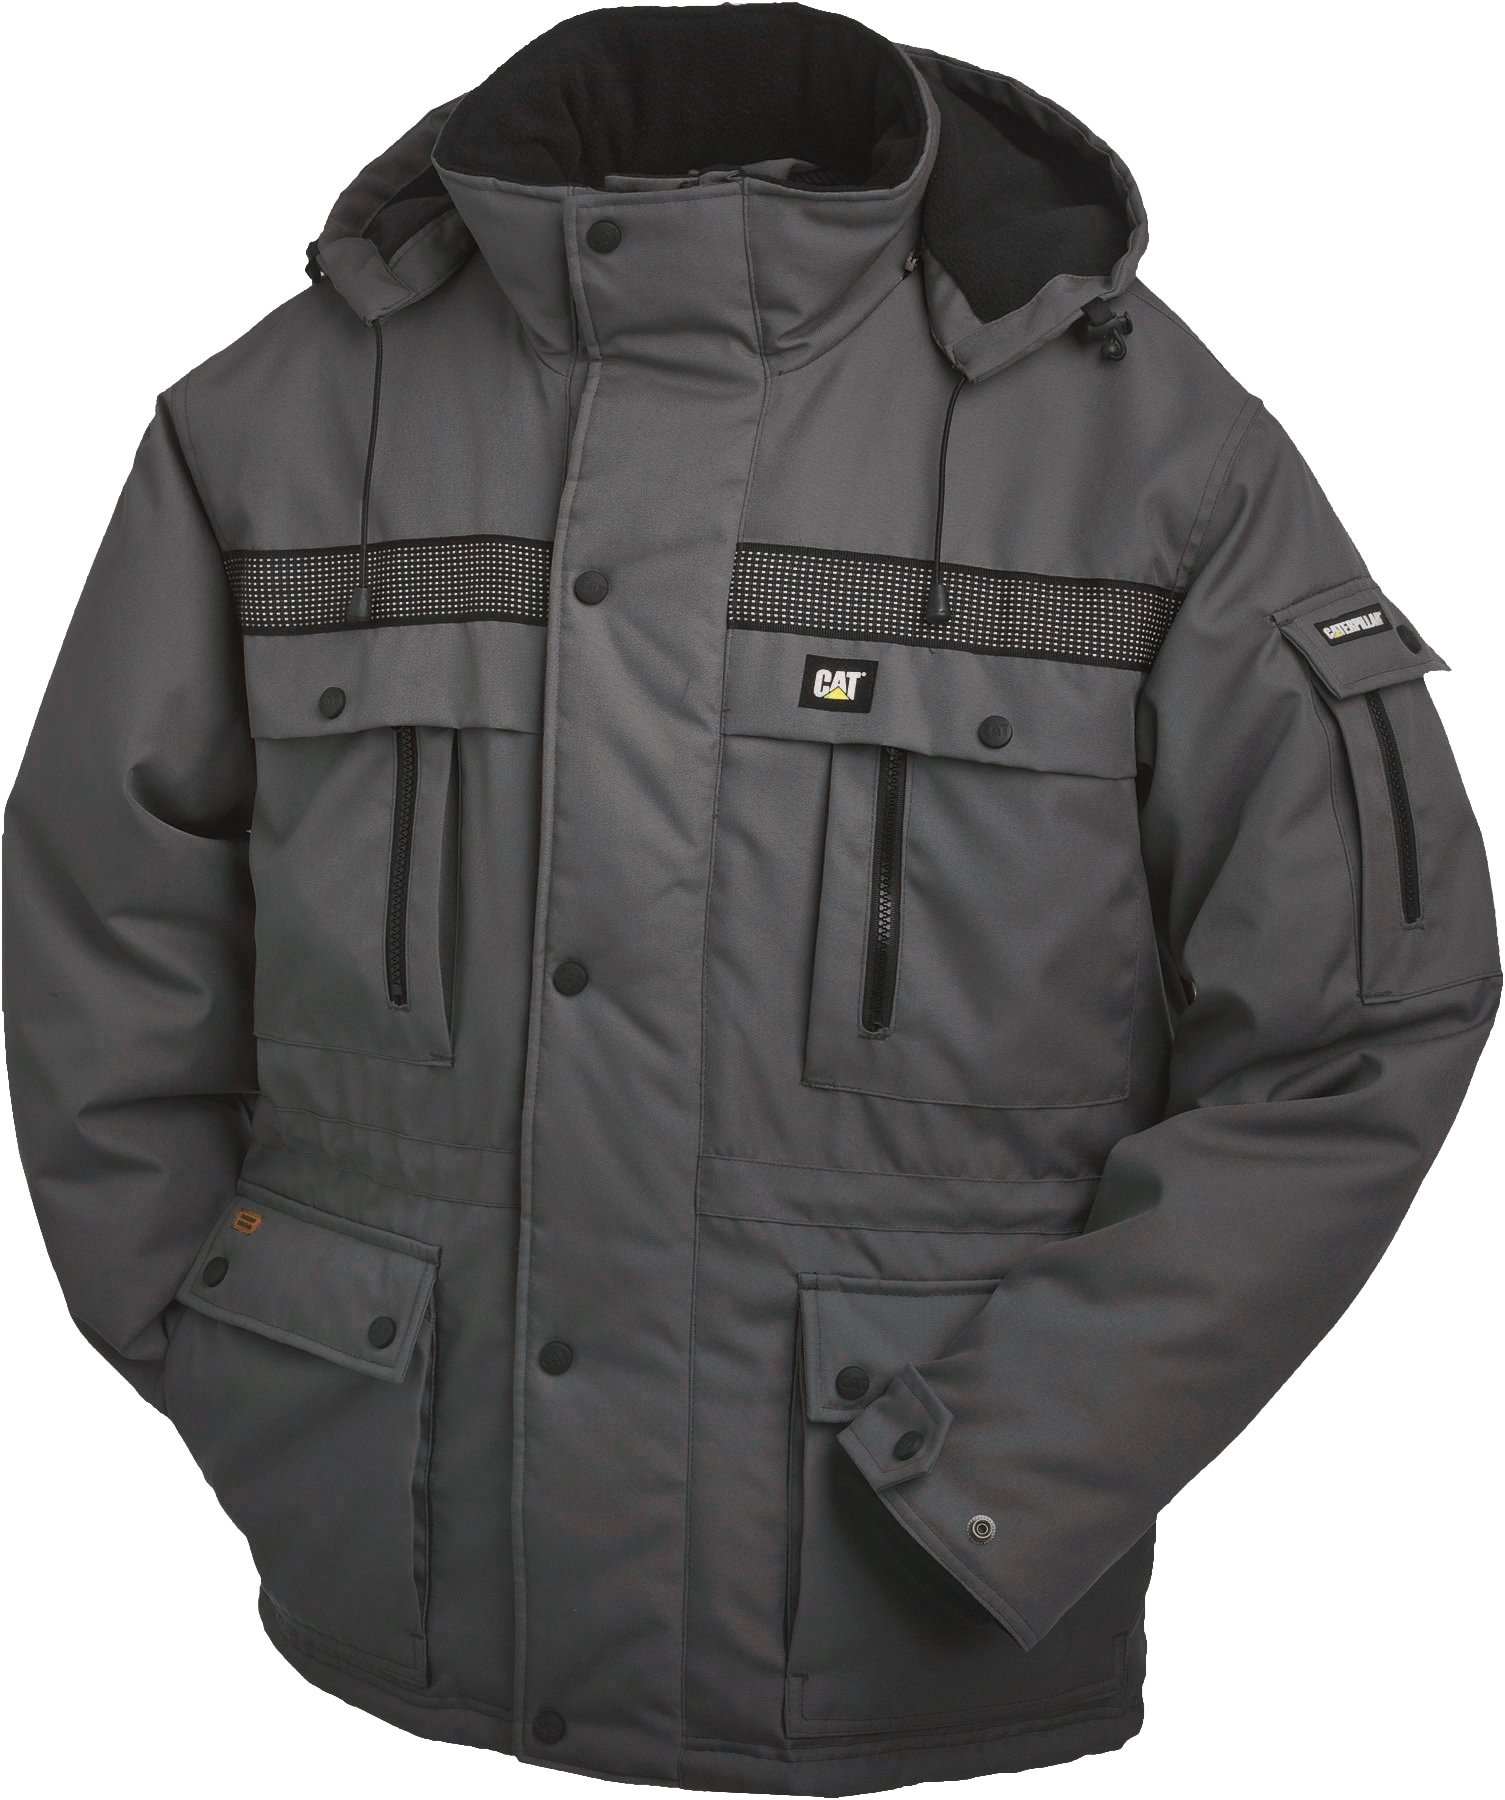 Caterpillar Men's Big and Tall Heavy Insulated Parka (Regular and Big & Tall Sizes), Graphite, Large by Caterpillar